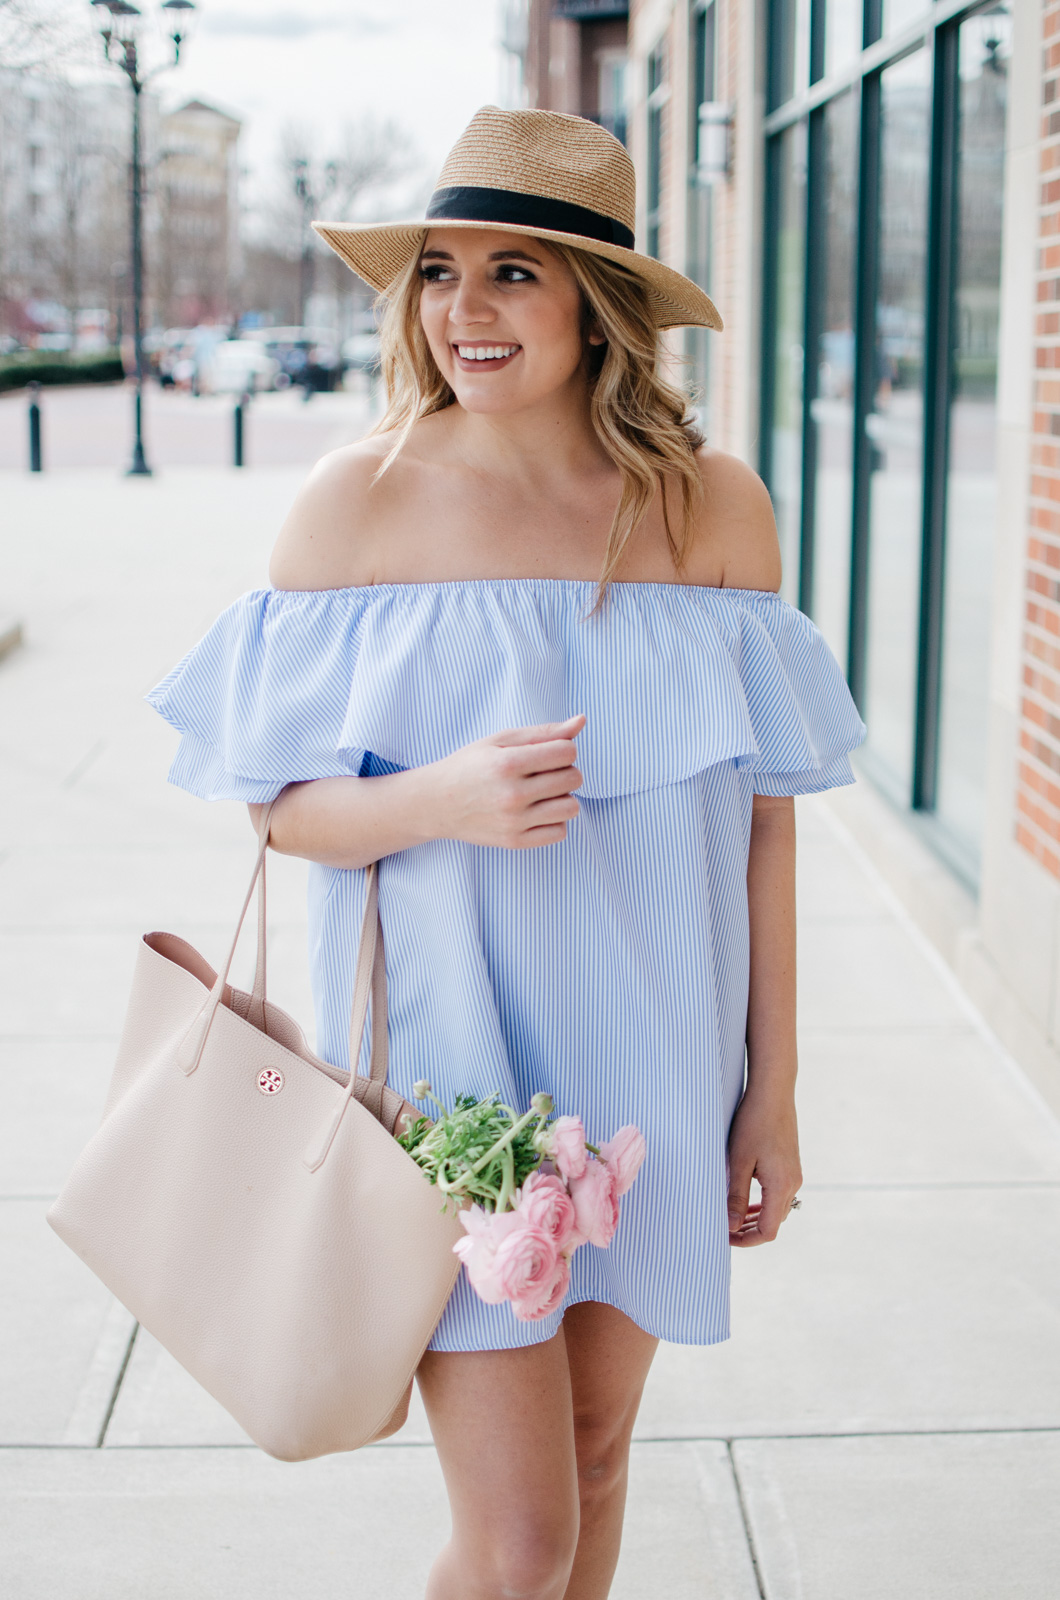 off shoulder stripe dress - girly spring outfit | Click through for more cute spring outfits or to shop this look! bylaurenm.com